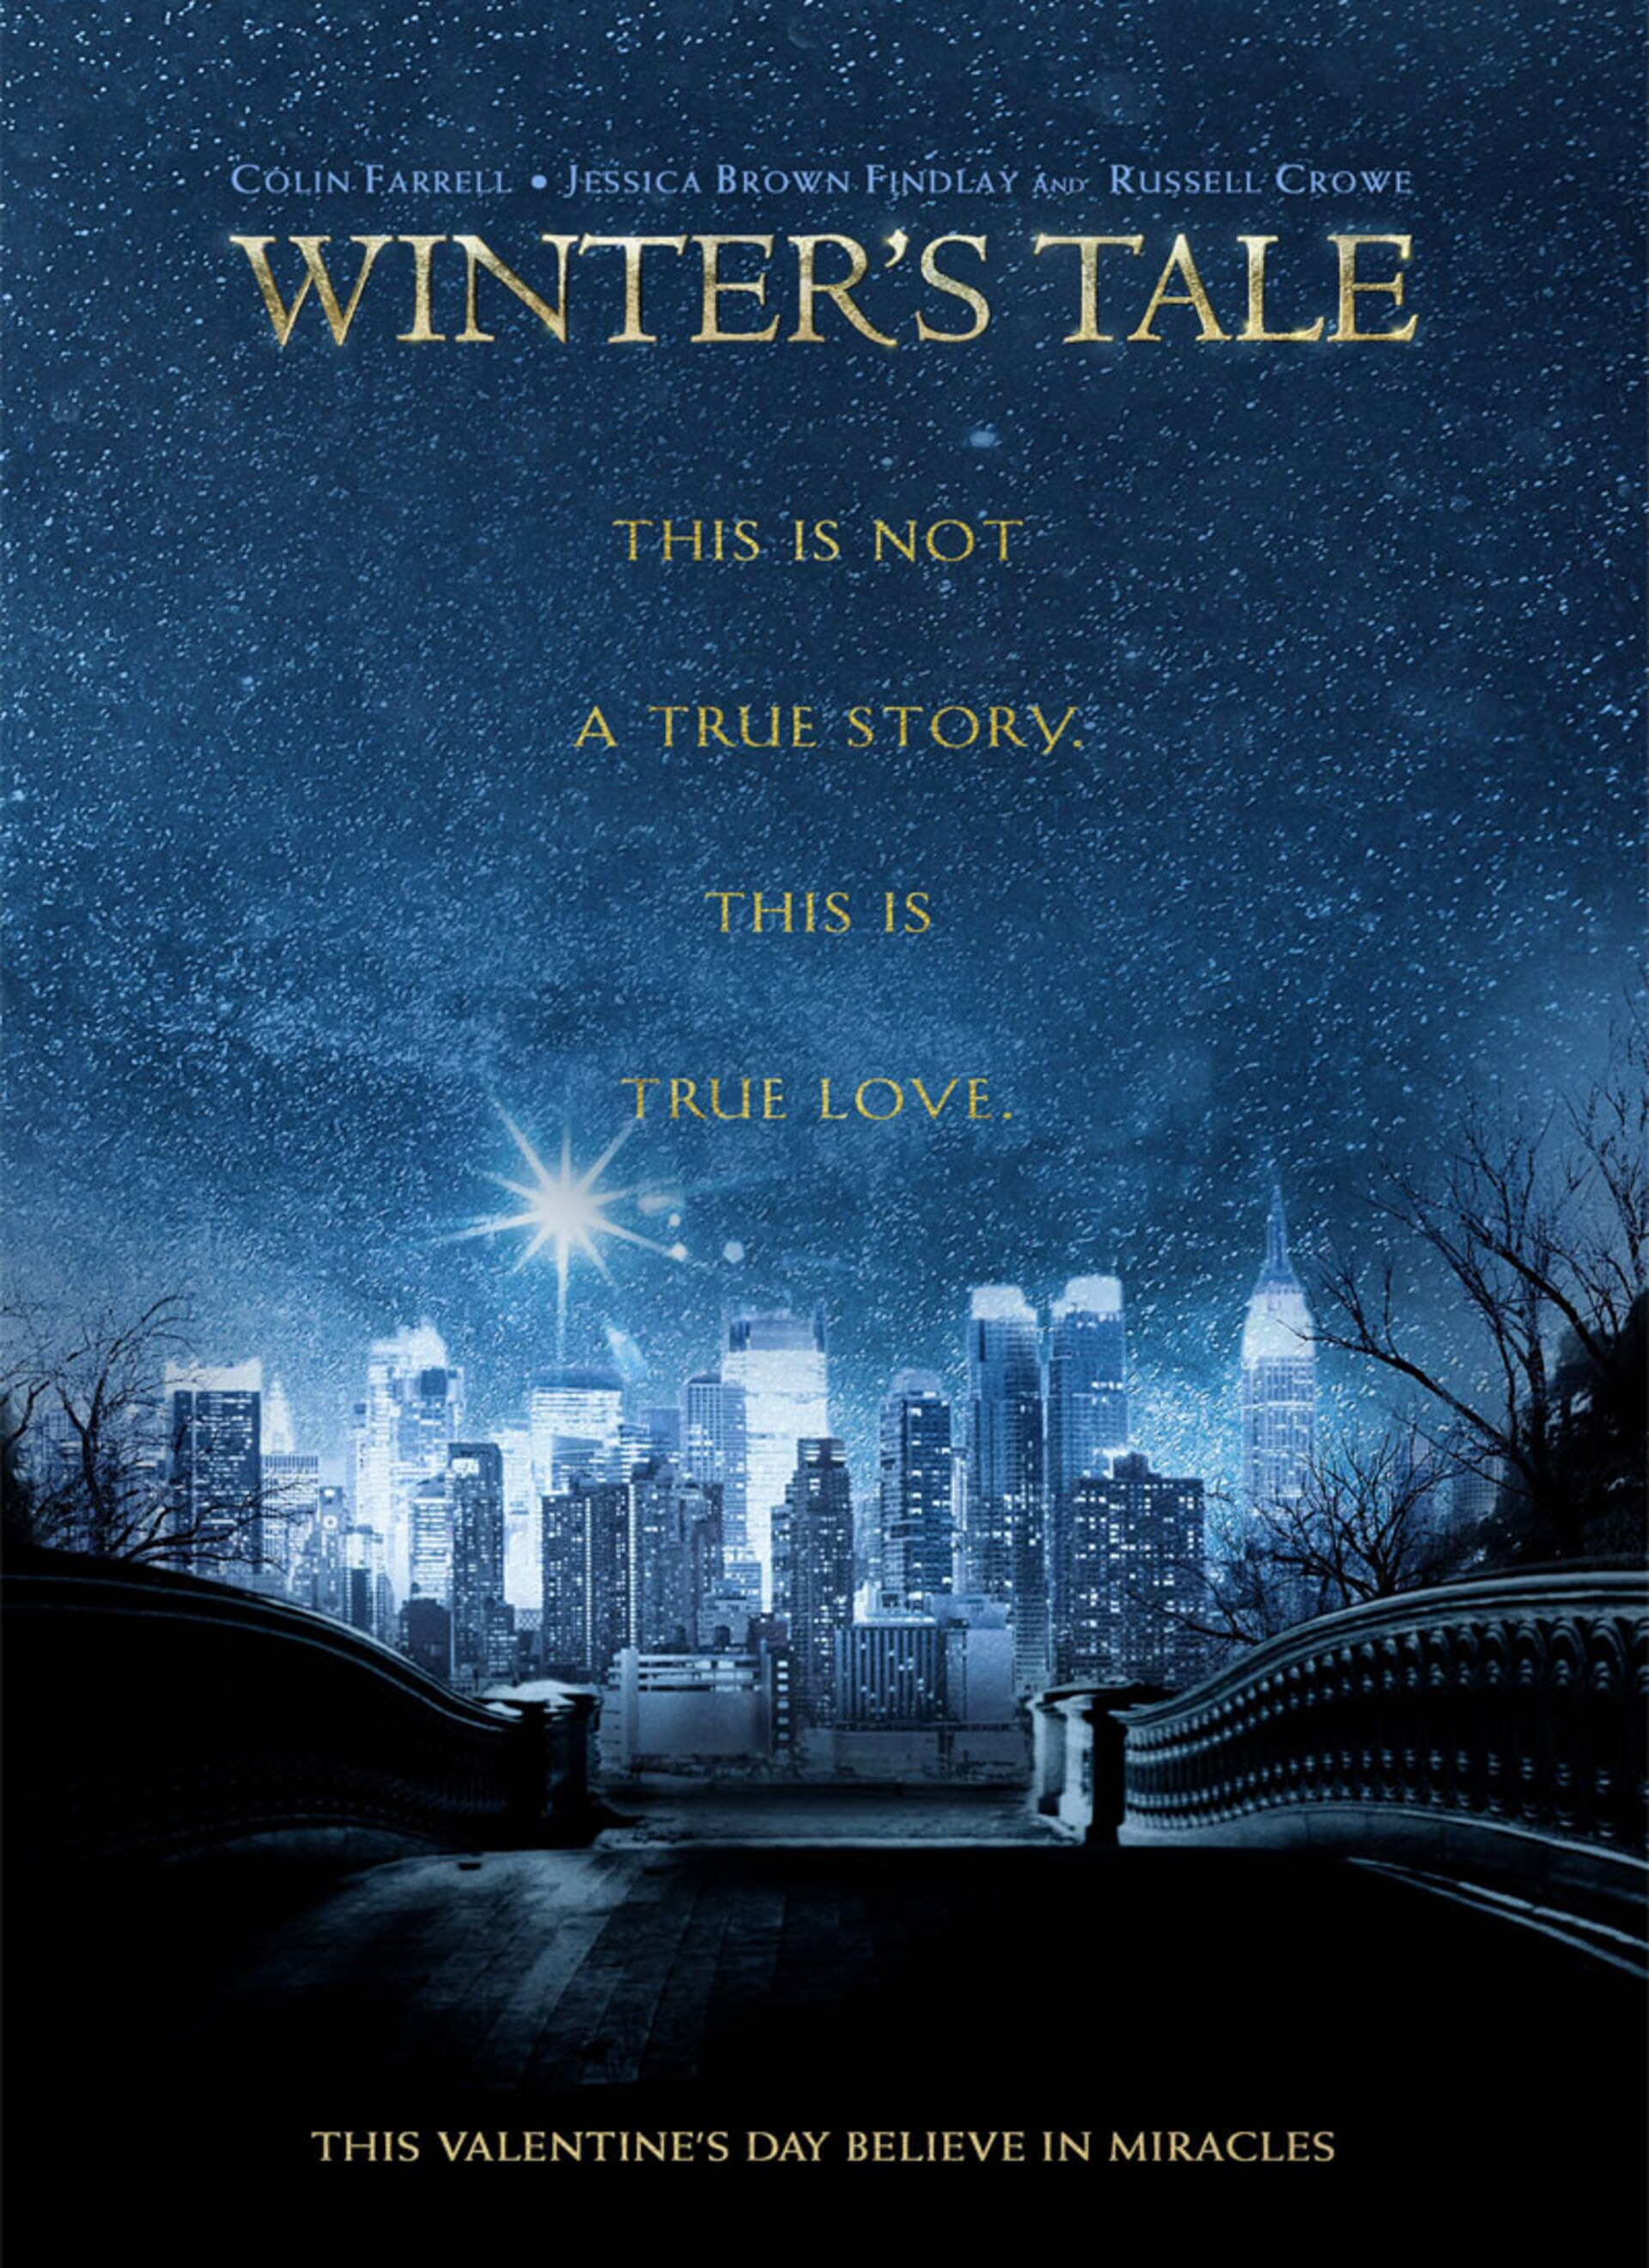 Winter's Tale - Poster 2